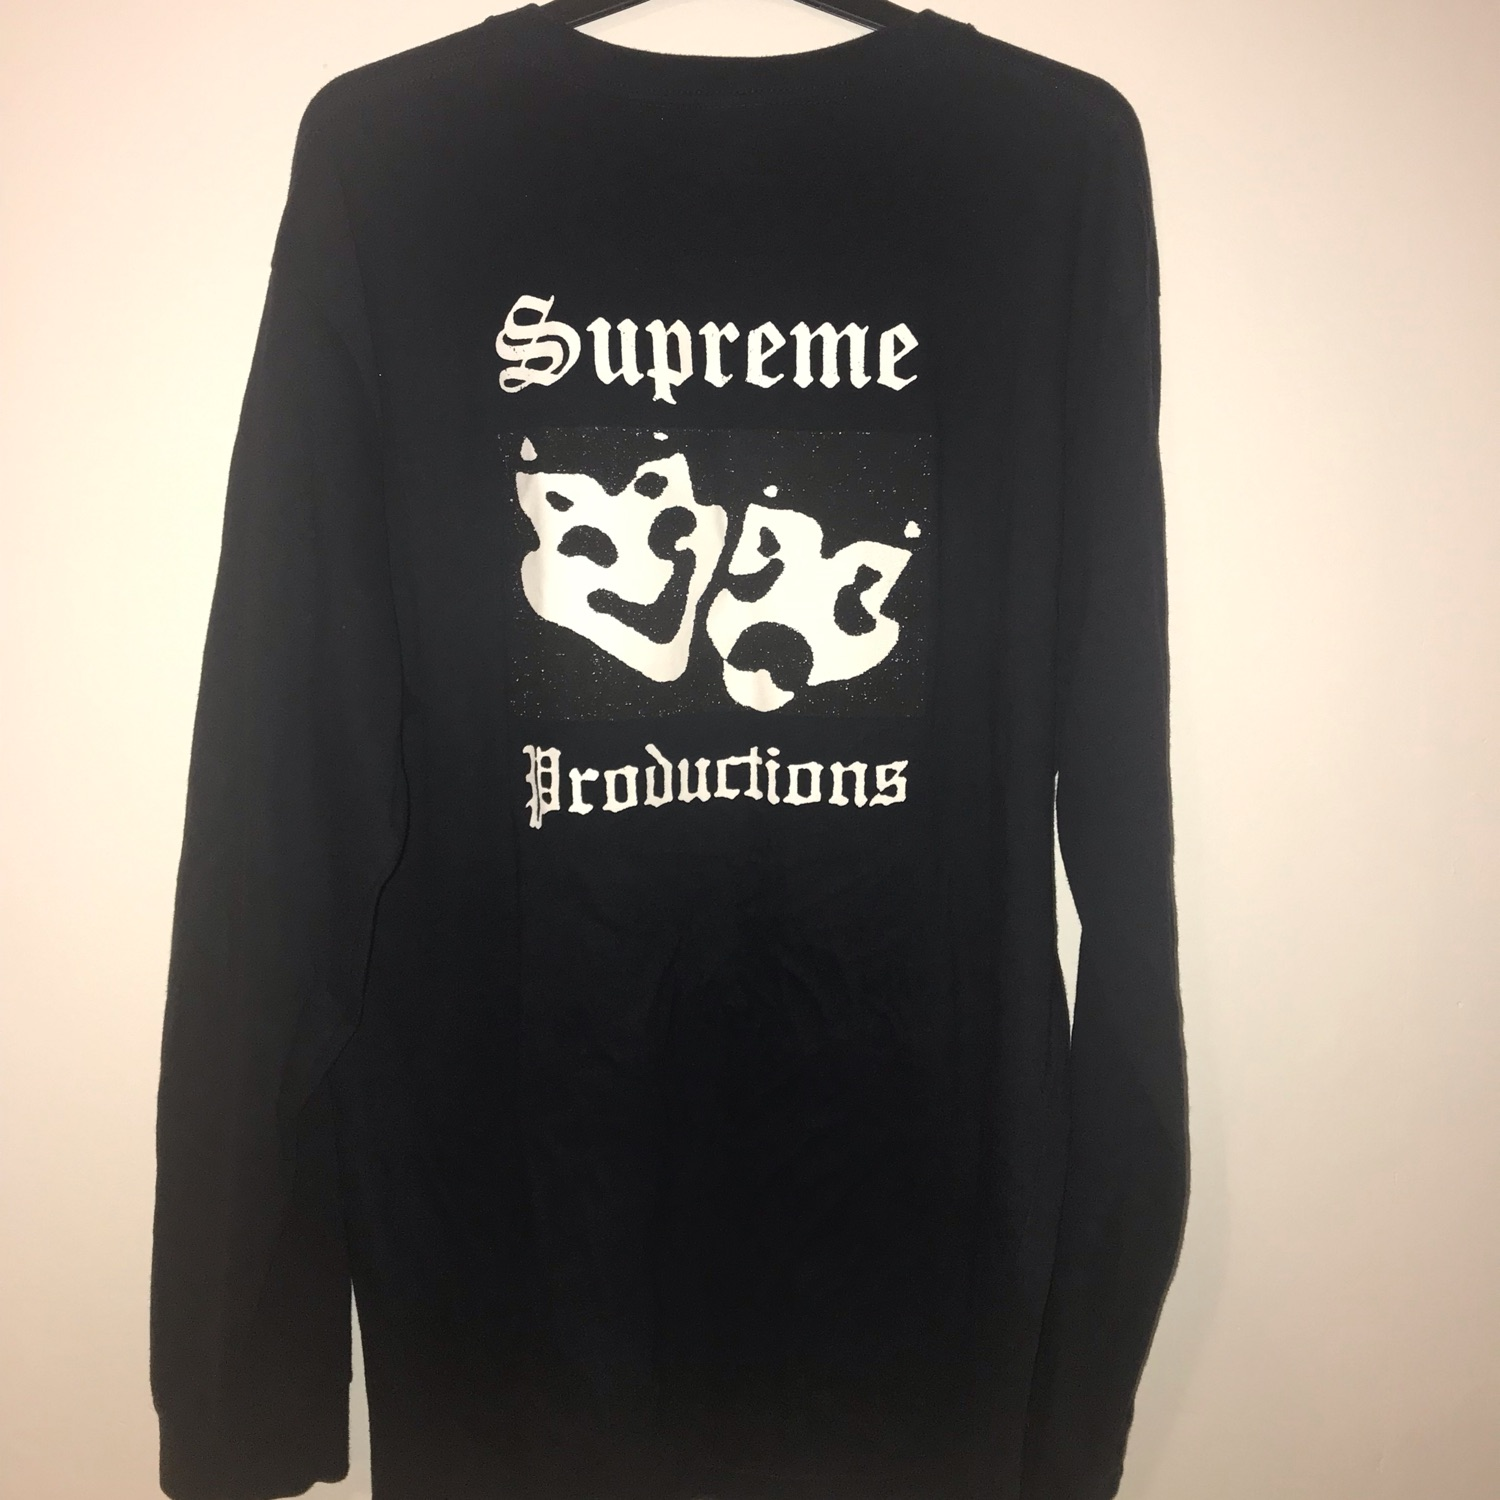 Ss16 Navy Supreme Productions L/S Tee